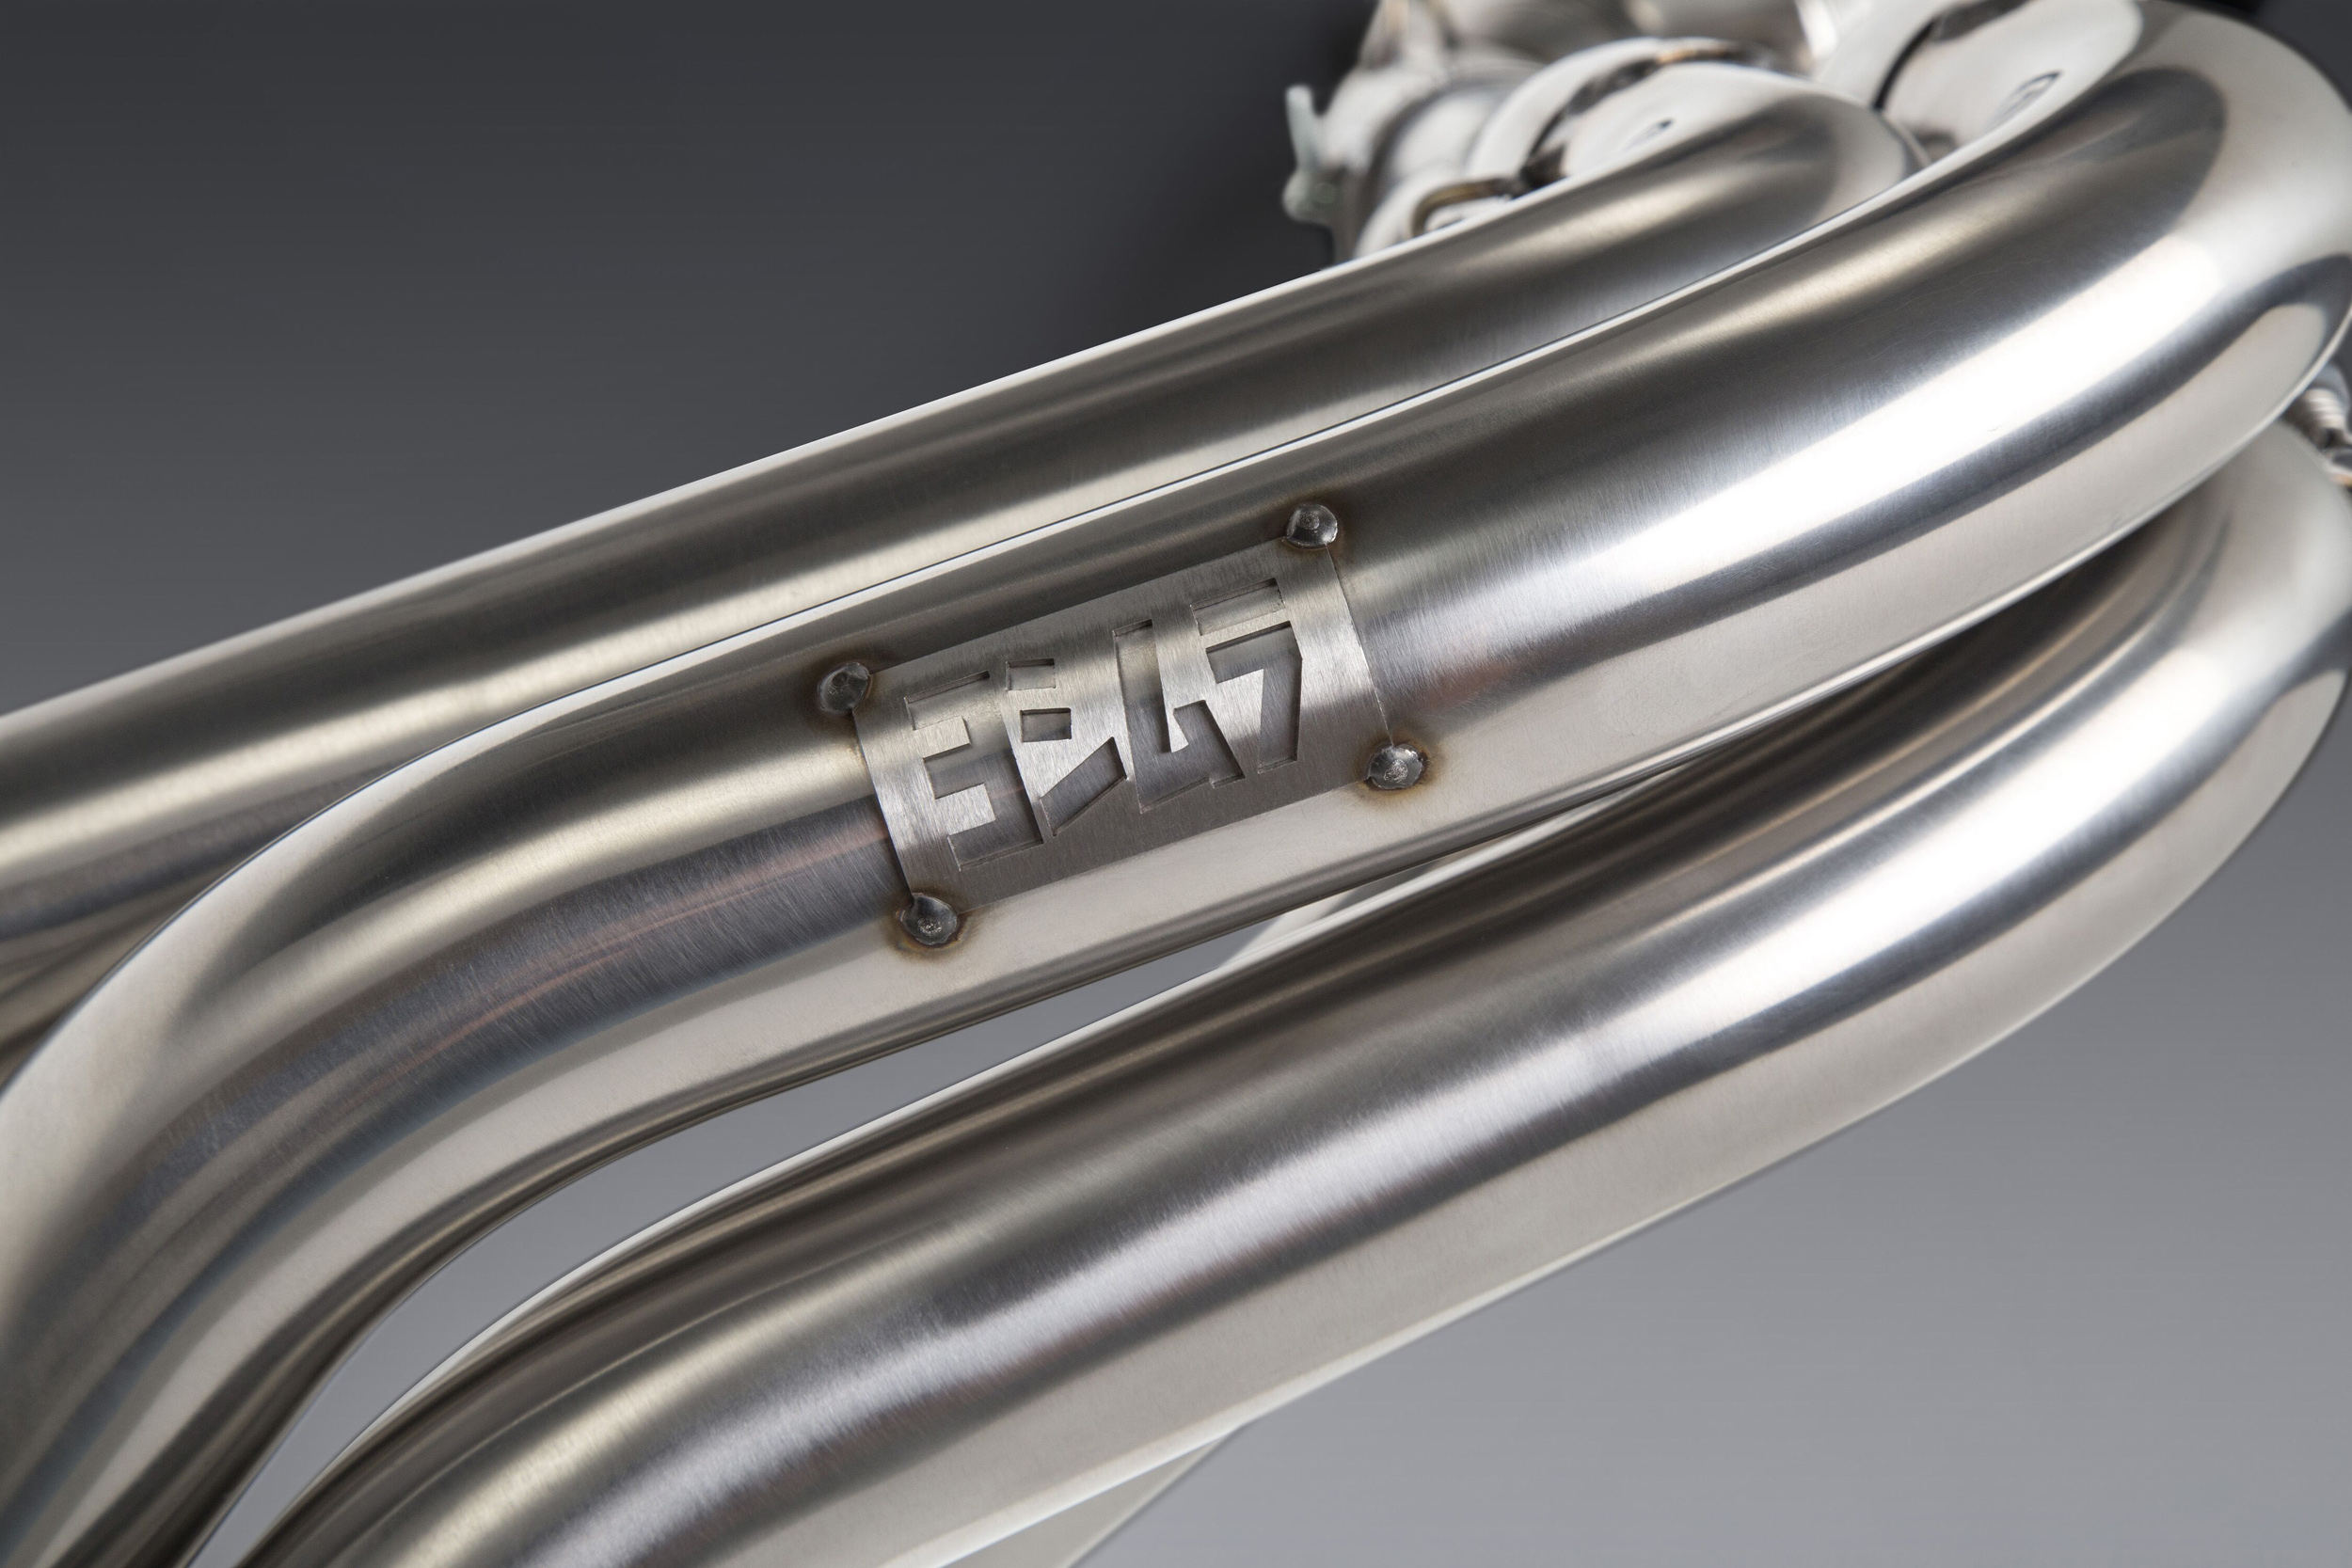 200227 Yoshimura Introduces Mod Lites GSX-R 1000 Exhaust Systems [5]